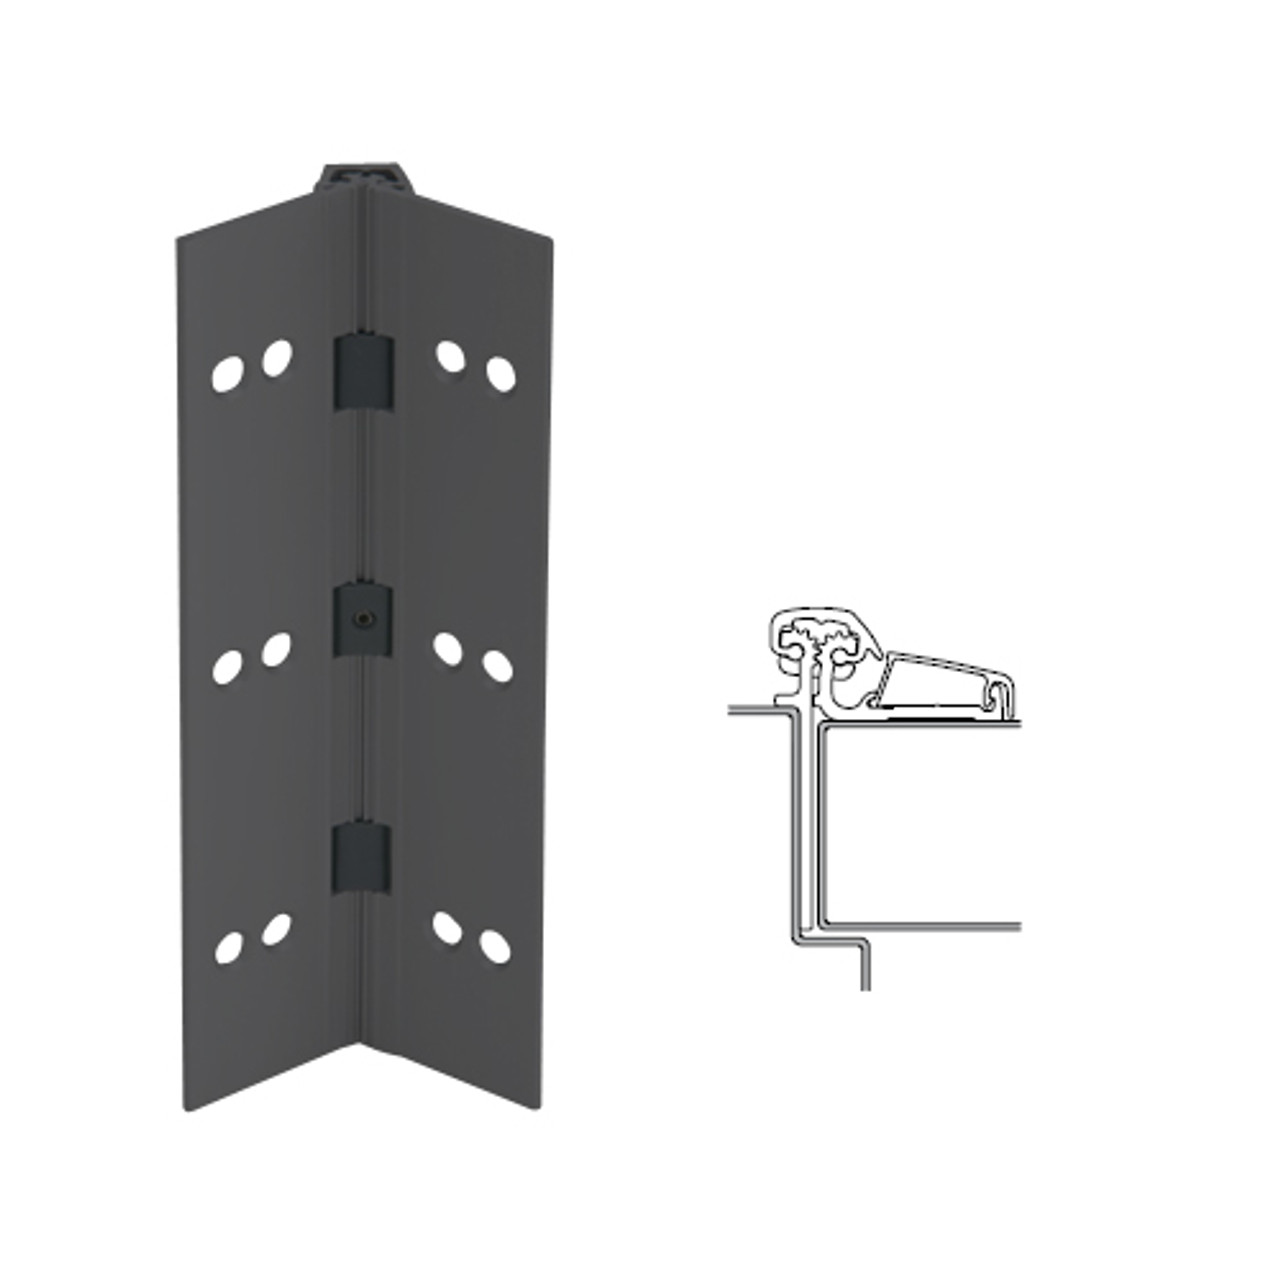 054XY-315AN-83 IVES Adjustable Half Surface Continuous Geared Hinges in Anodized Black